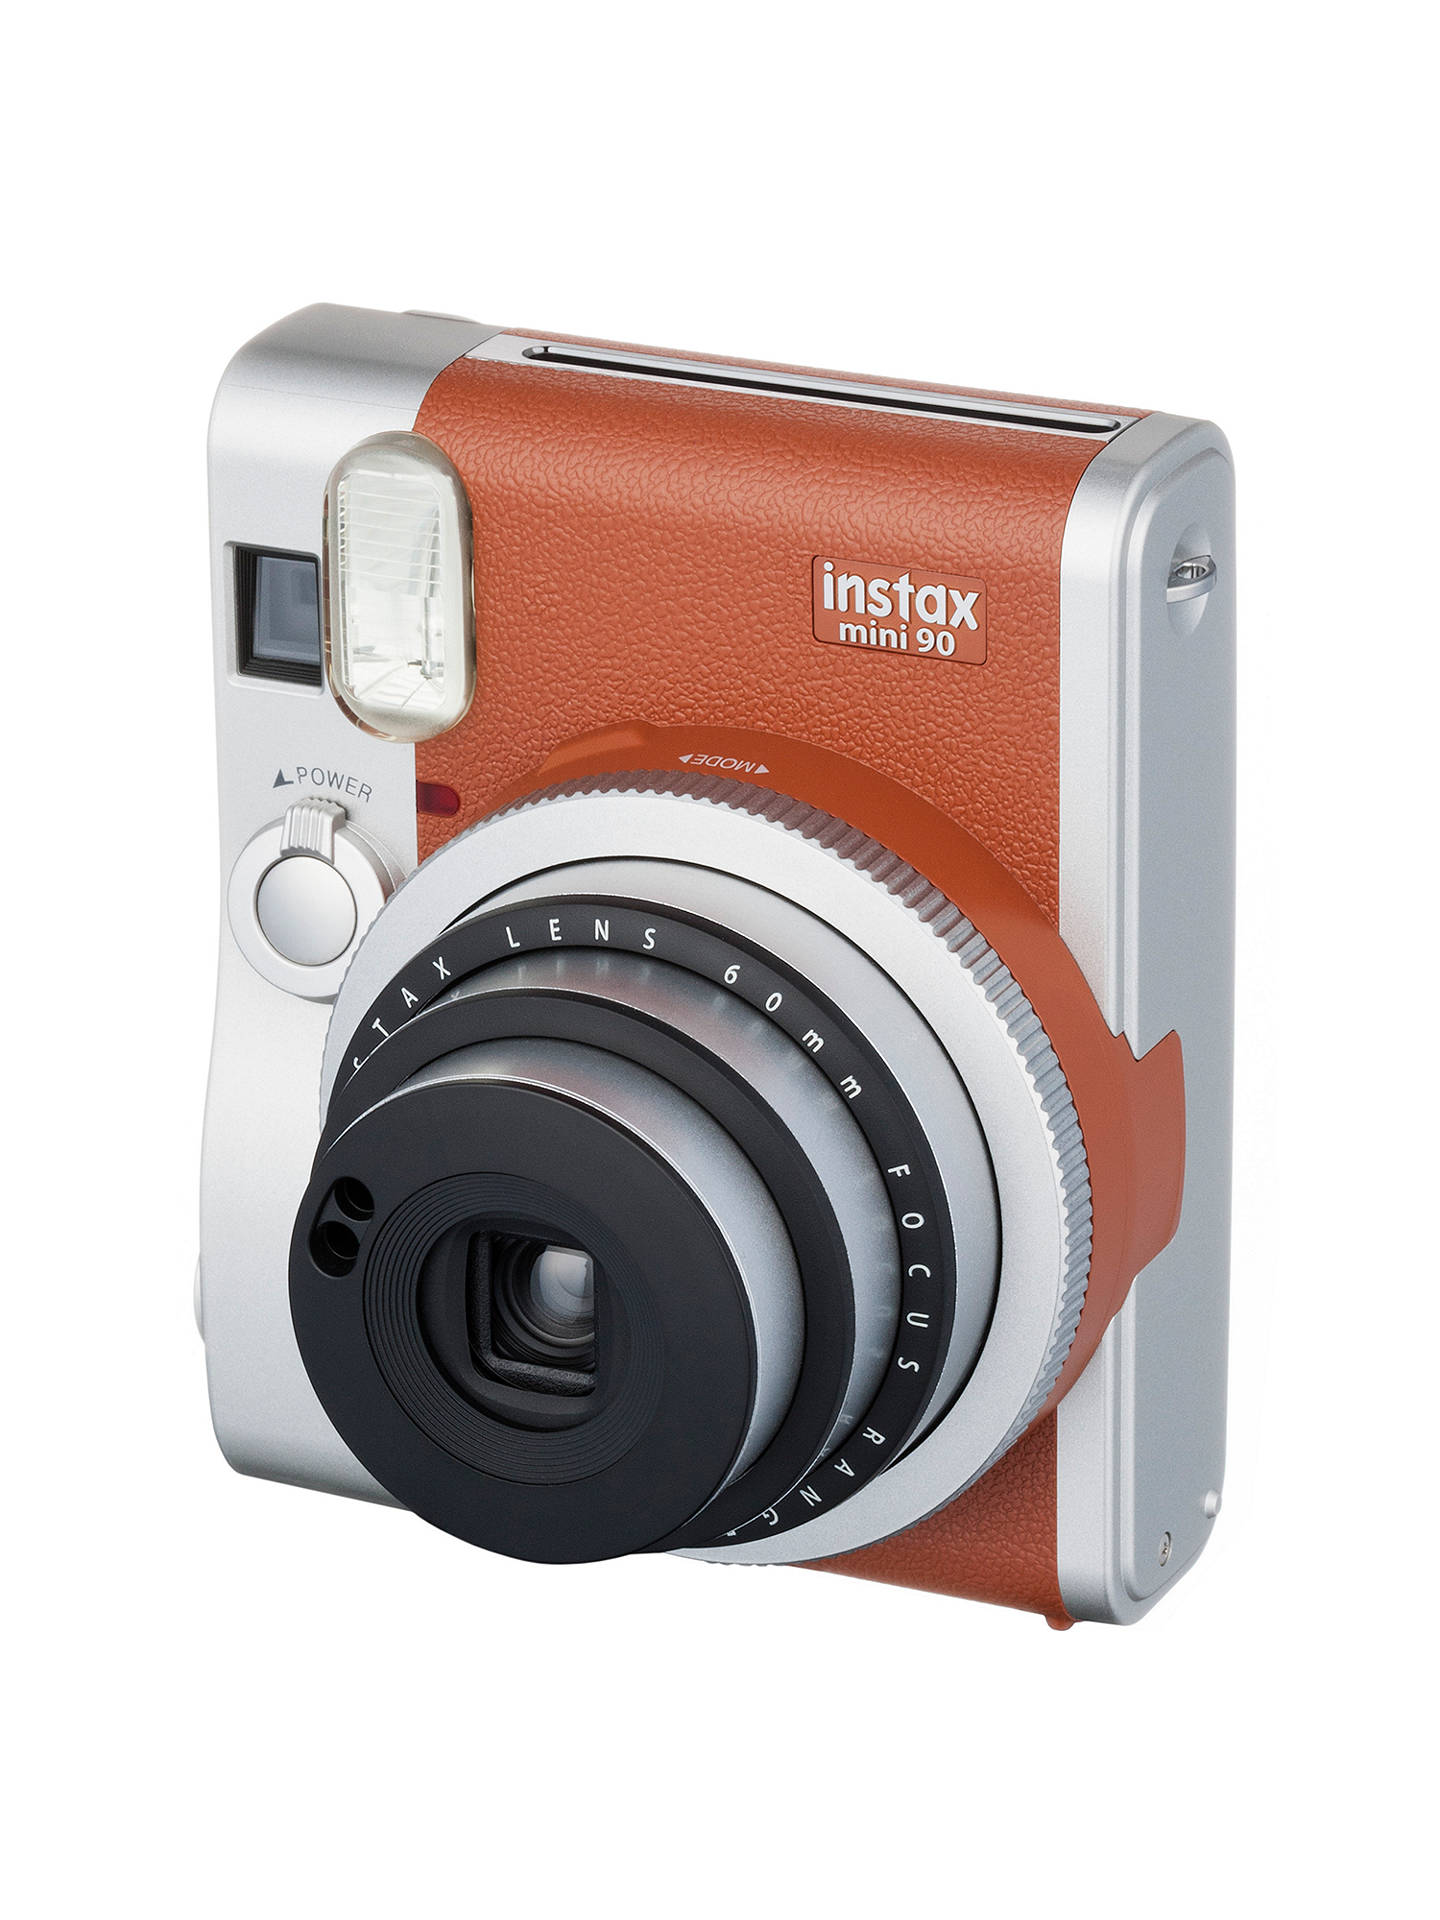 Buy Fujifilm Instax Mini 90 Instant Camera with 10 Shots of Film, Built-In Flash & Hand Strap, Tan Online at johnlewis.com